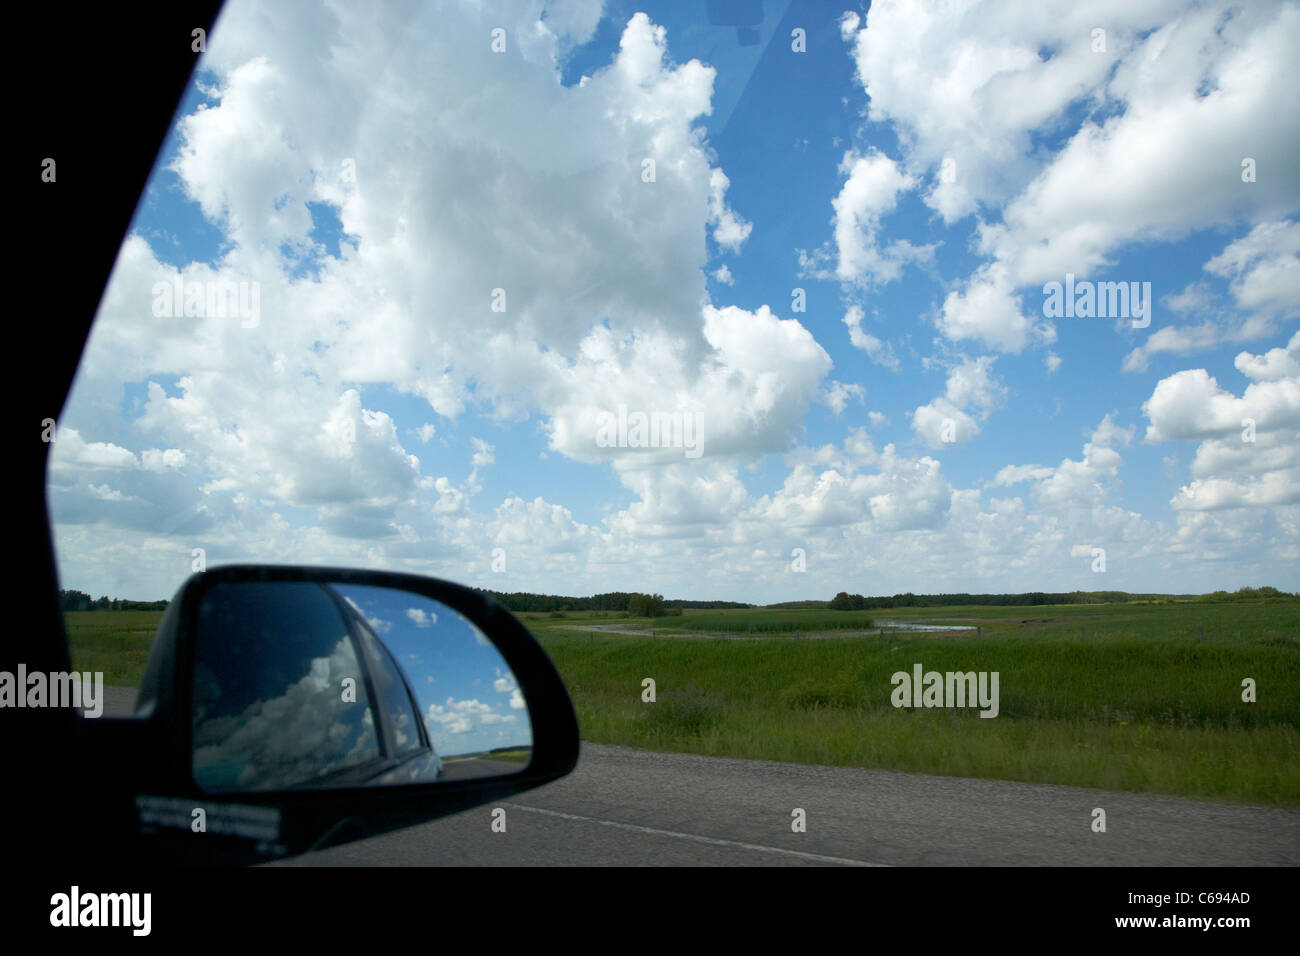 looking out window at cloudy sky on yellowhead highway route 16 through Manitoba Canada - Stock Image